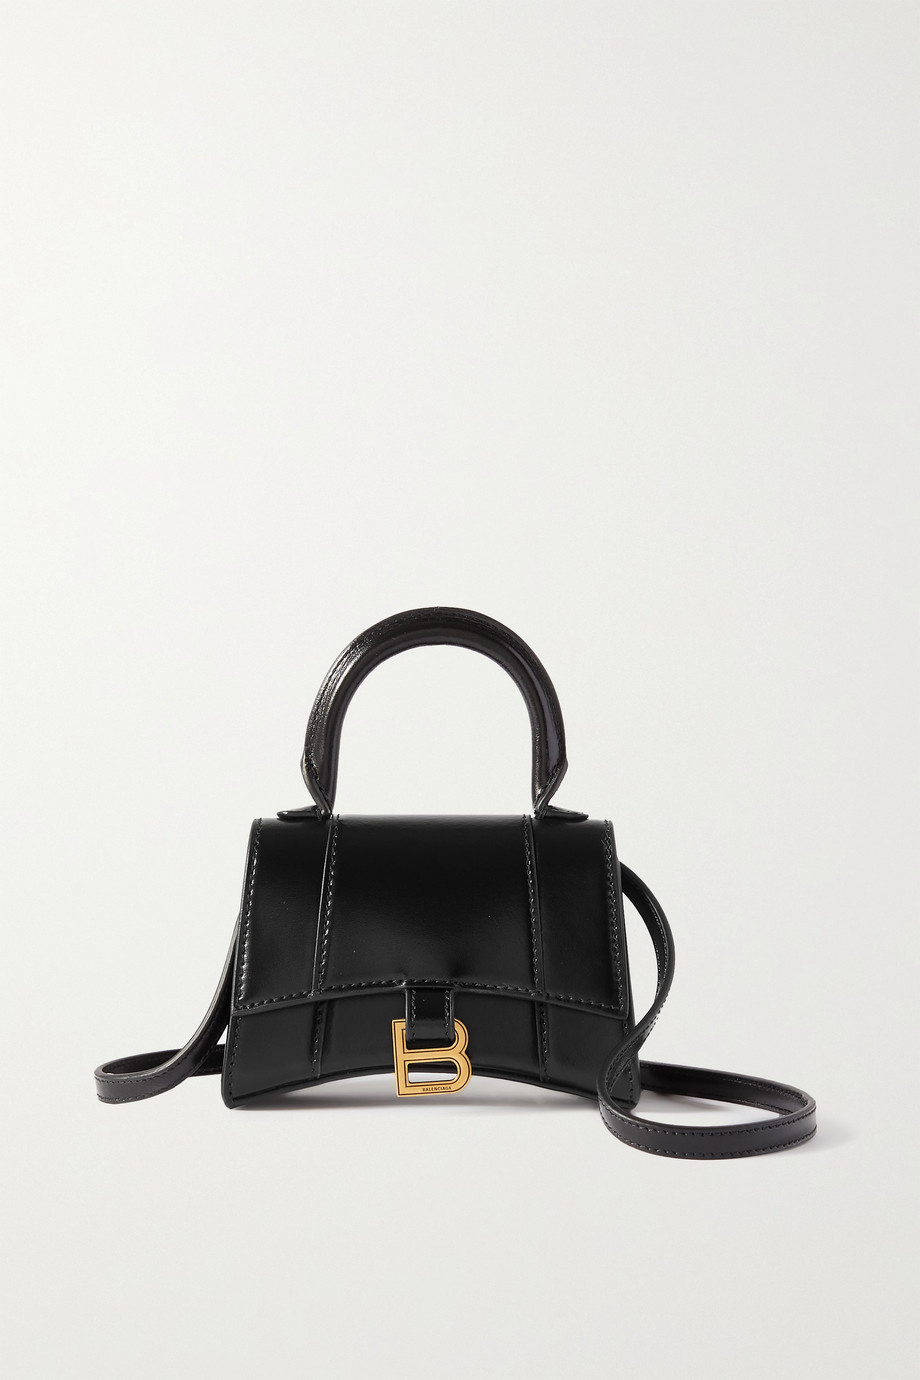 BALENCIAGA Hourglass nano leather tote